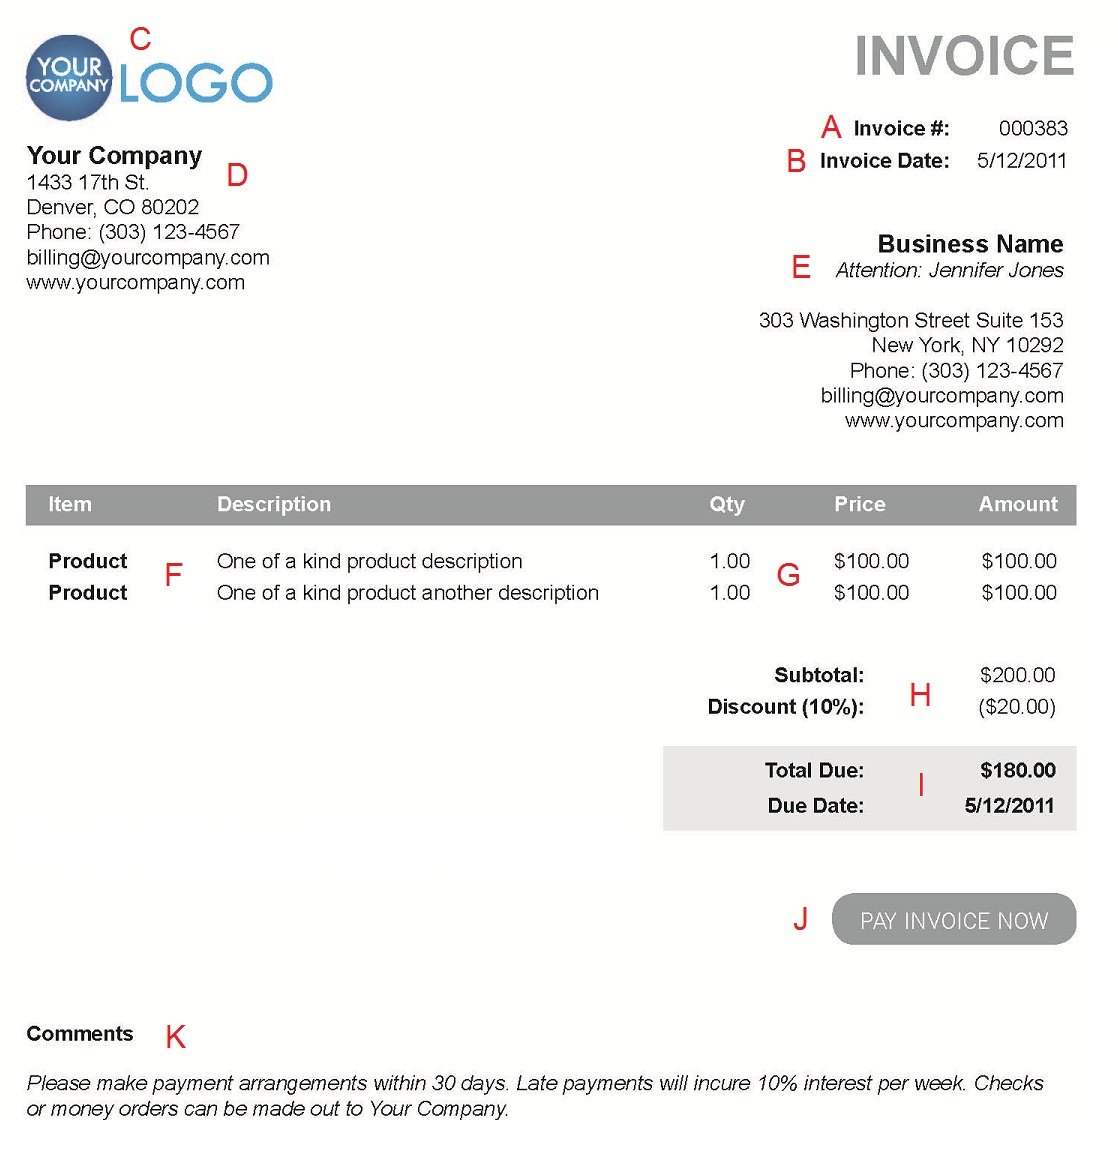 Coachoutletonlineplusus  Pleasing The  Different Sections Of An Electronic Payment Invoice With Goodlooking A  With Beautiful Free Blank Invoice Template Word Also Invoice Purchasing In Addition Microsoft Office Template Invoice And Express Invoice Software As Well As Dodge Ram  Invoice Price Additionally Acura Tl Invoice Price From Paysimplecom With Coachoutletonlineplusus  Goodlooking The  Different Sections Of An Electronic Payment Invoice With Beautiful A  And Pleasing Free Blank Invoice Template Word Also Invoice Purchasing In Addition Microsoft Office Template Invoice From Paysimplecom